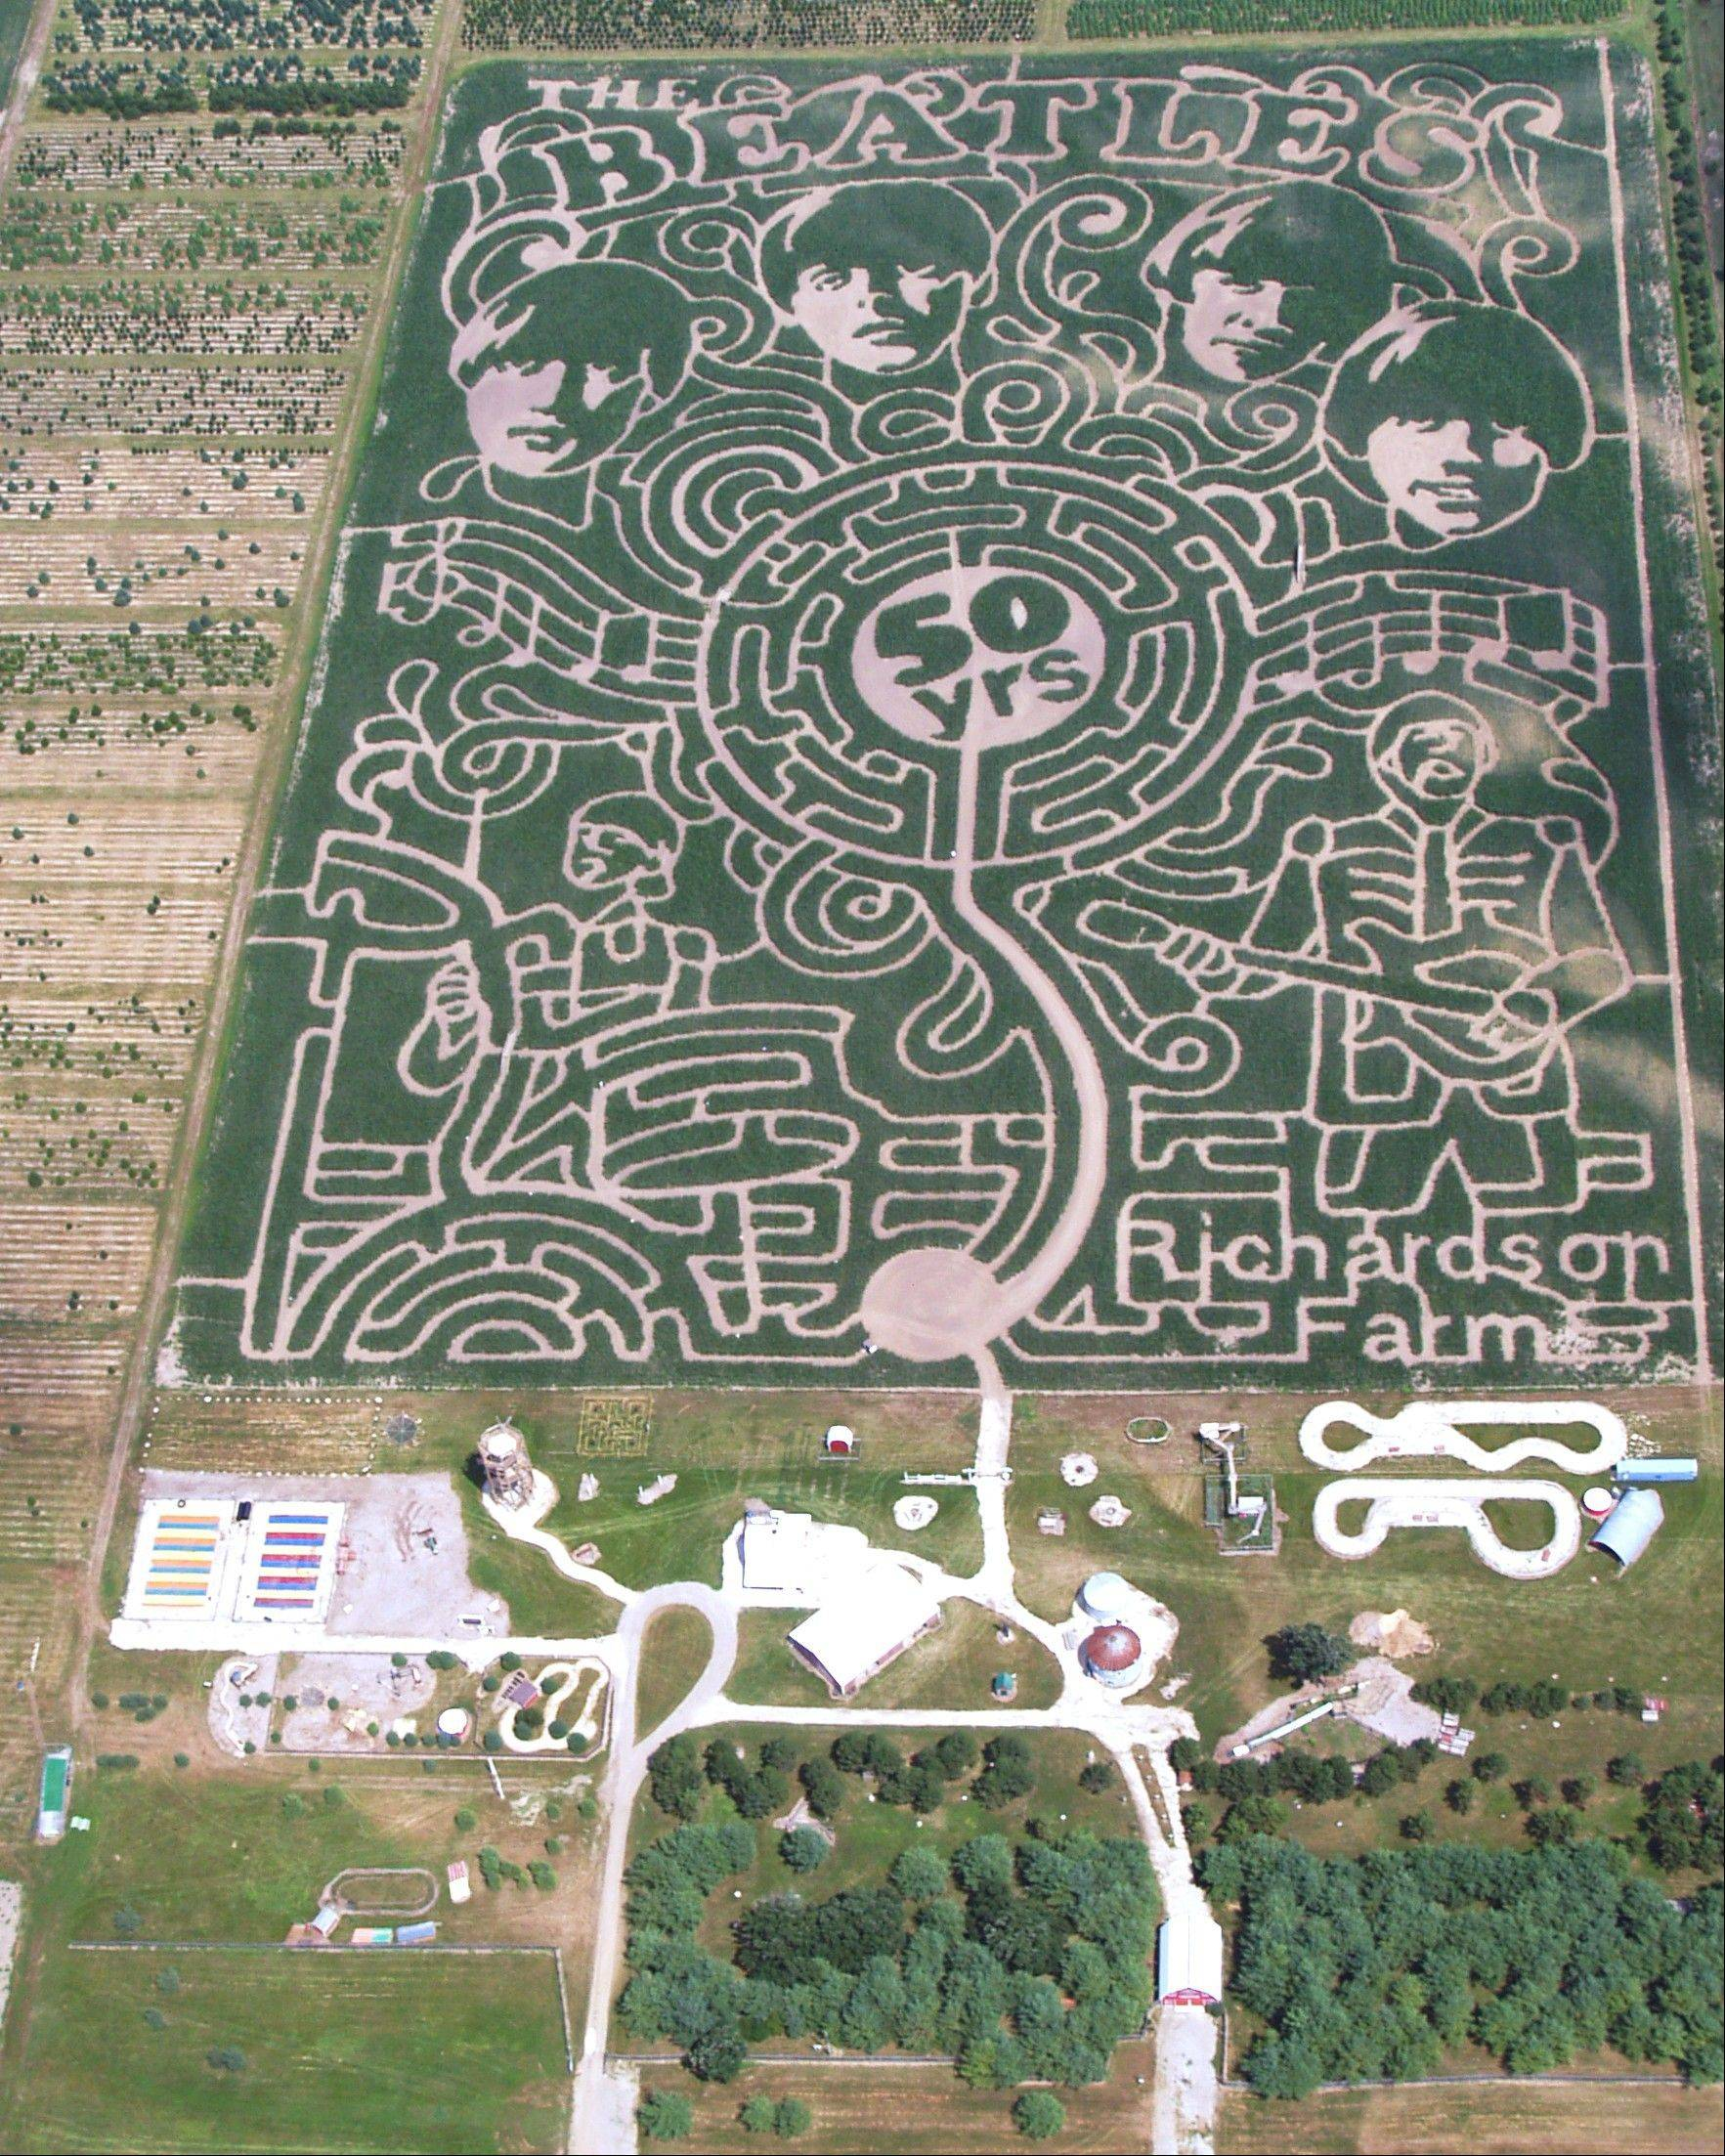 "The faces of The Beatles are part of the ""world's largest corn maze"" at the Richardson Farm in Sugar Grove."